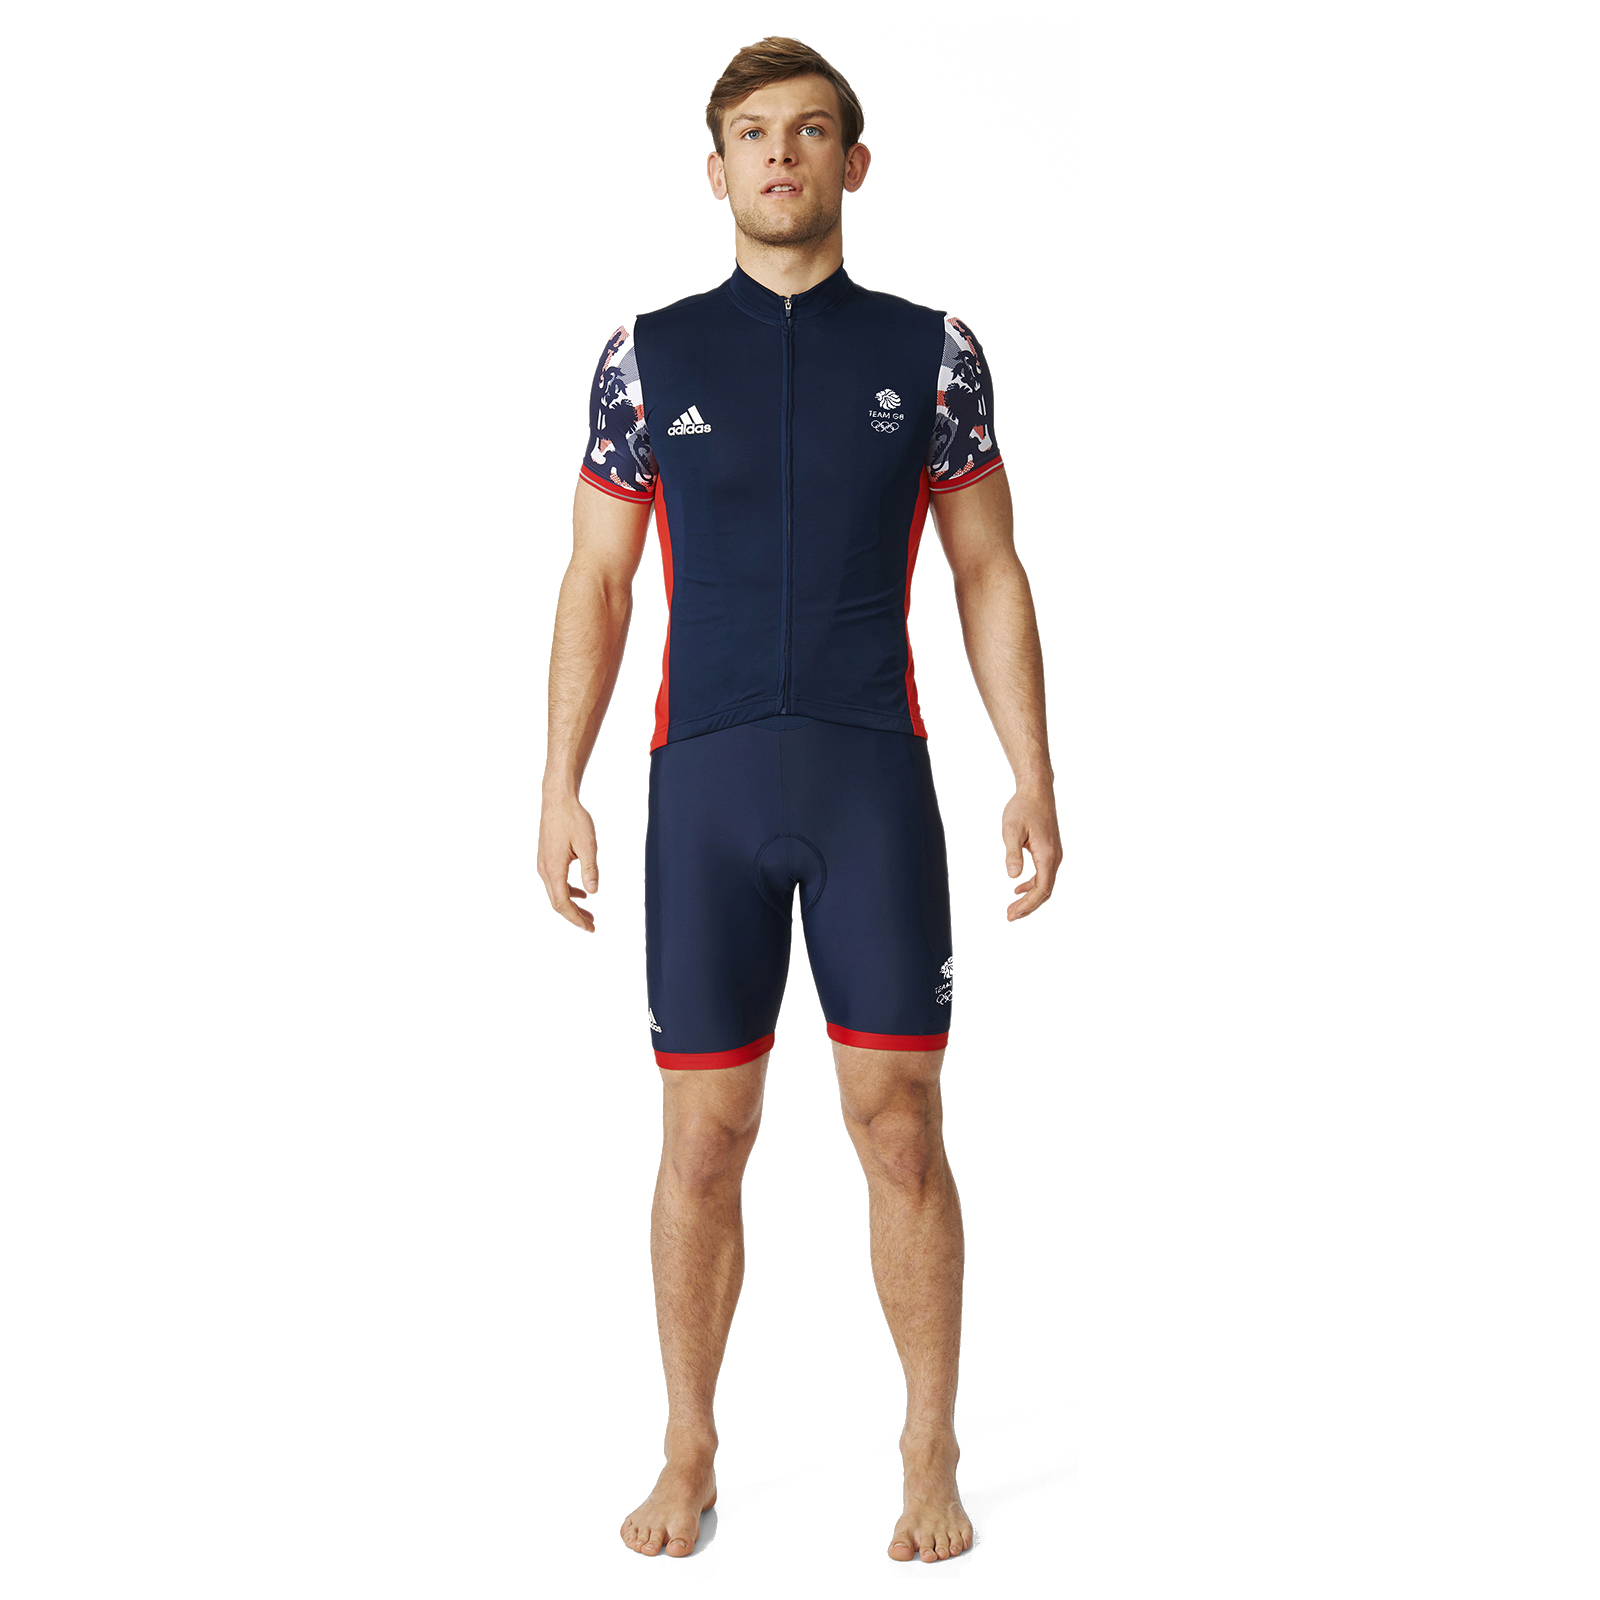 e1e2be79fe0 adidas Men's Team GB Replica Training Cycling Short Sleeve Jersey - Blue |  ProBikeKit New Zealand